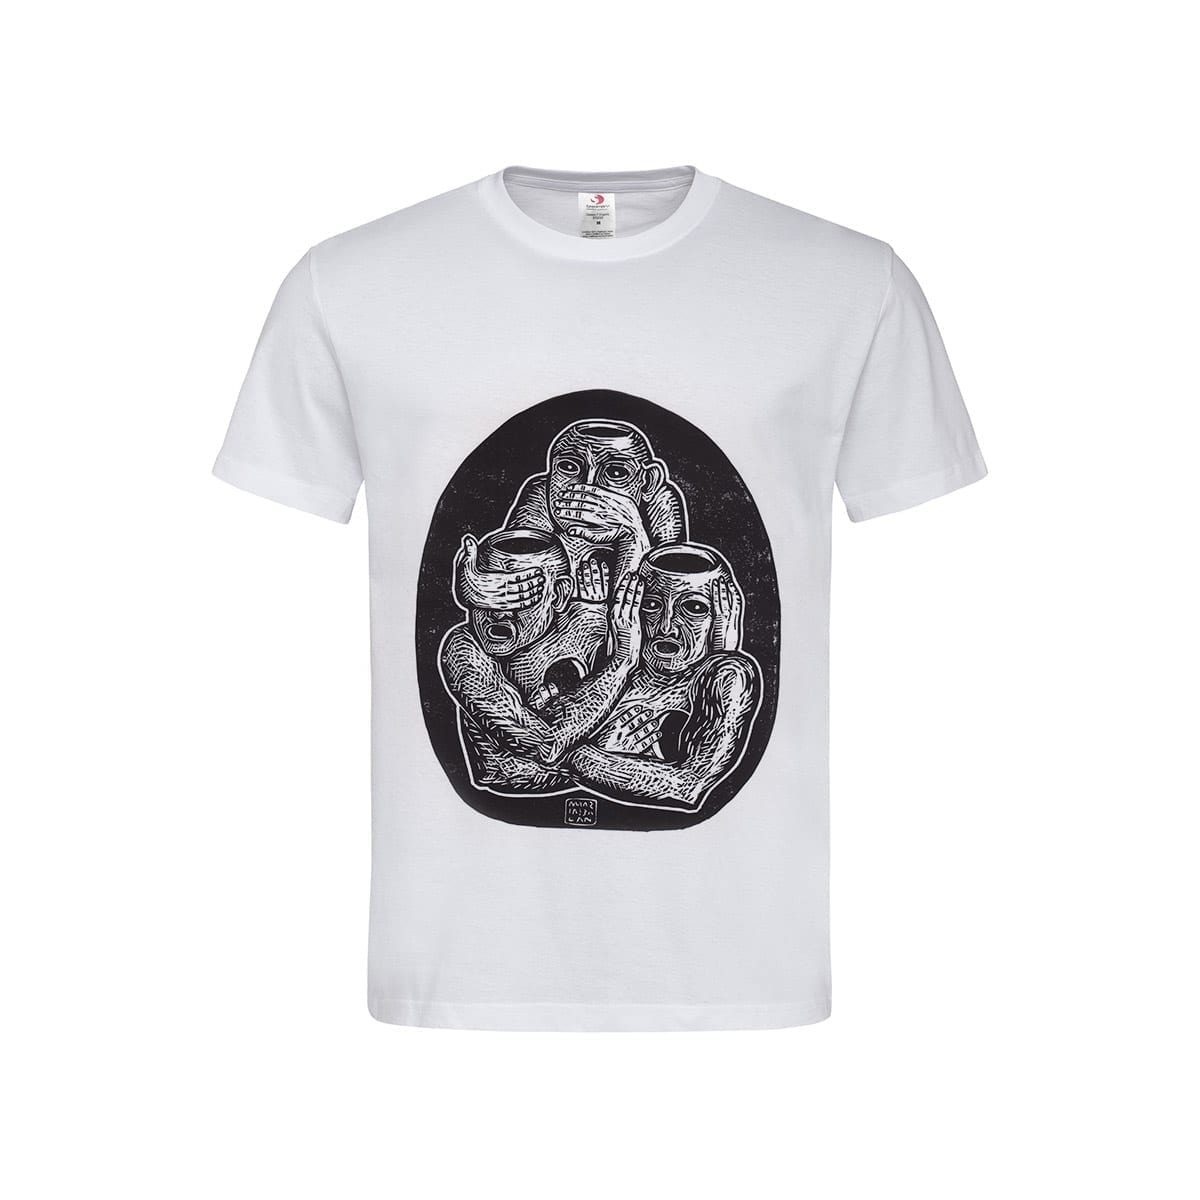 Three Unwise Humans manual linocut printed Men's T-Shirt by Maria Bălan